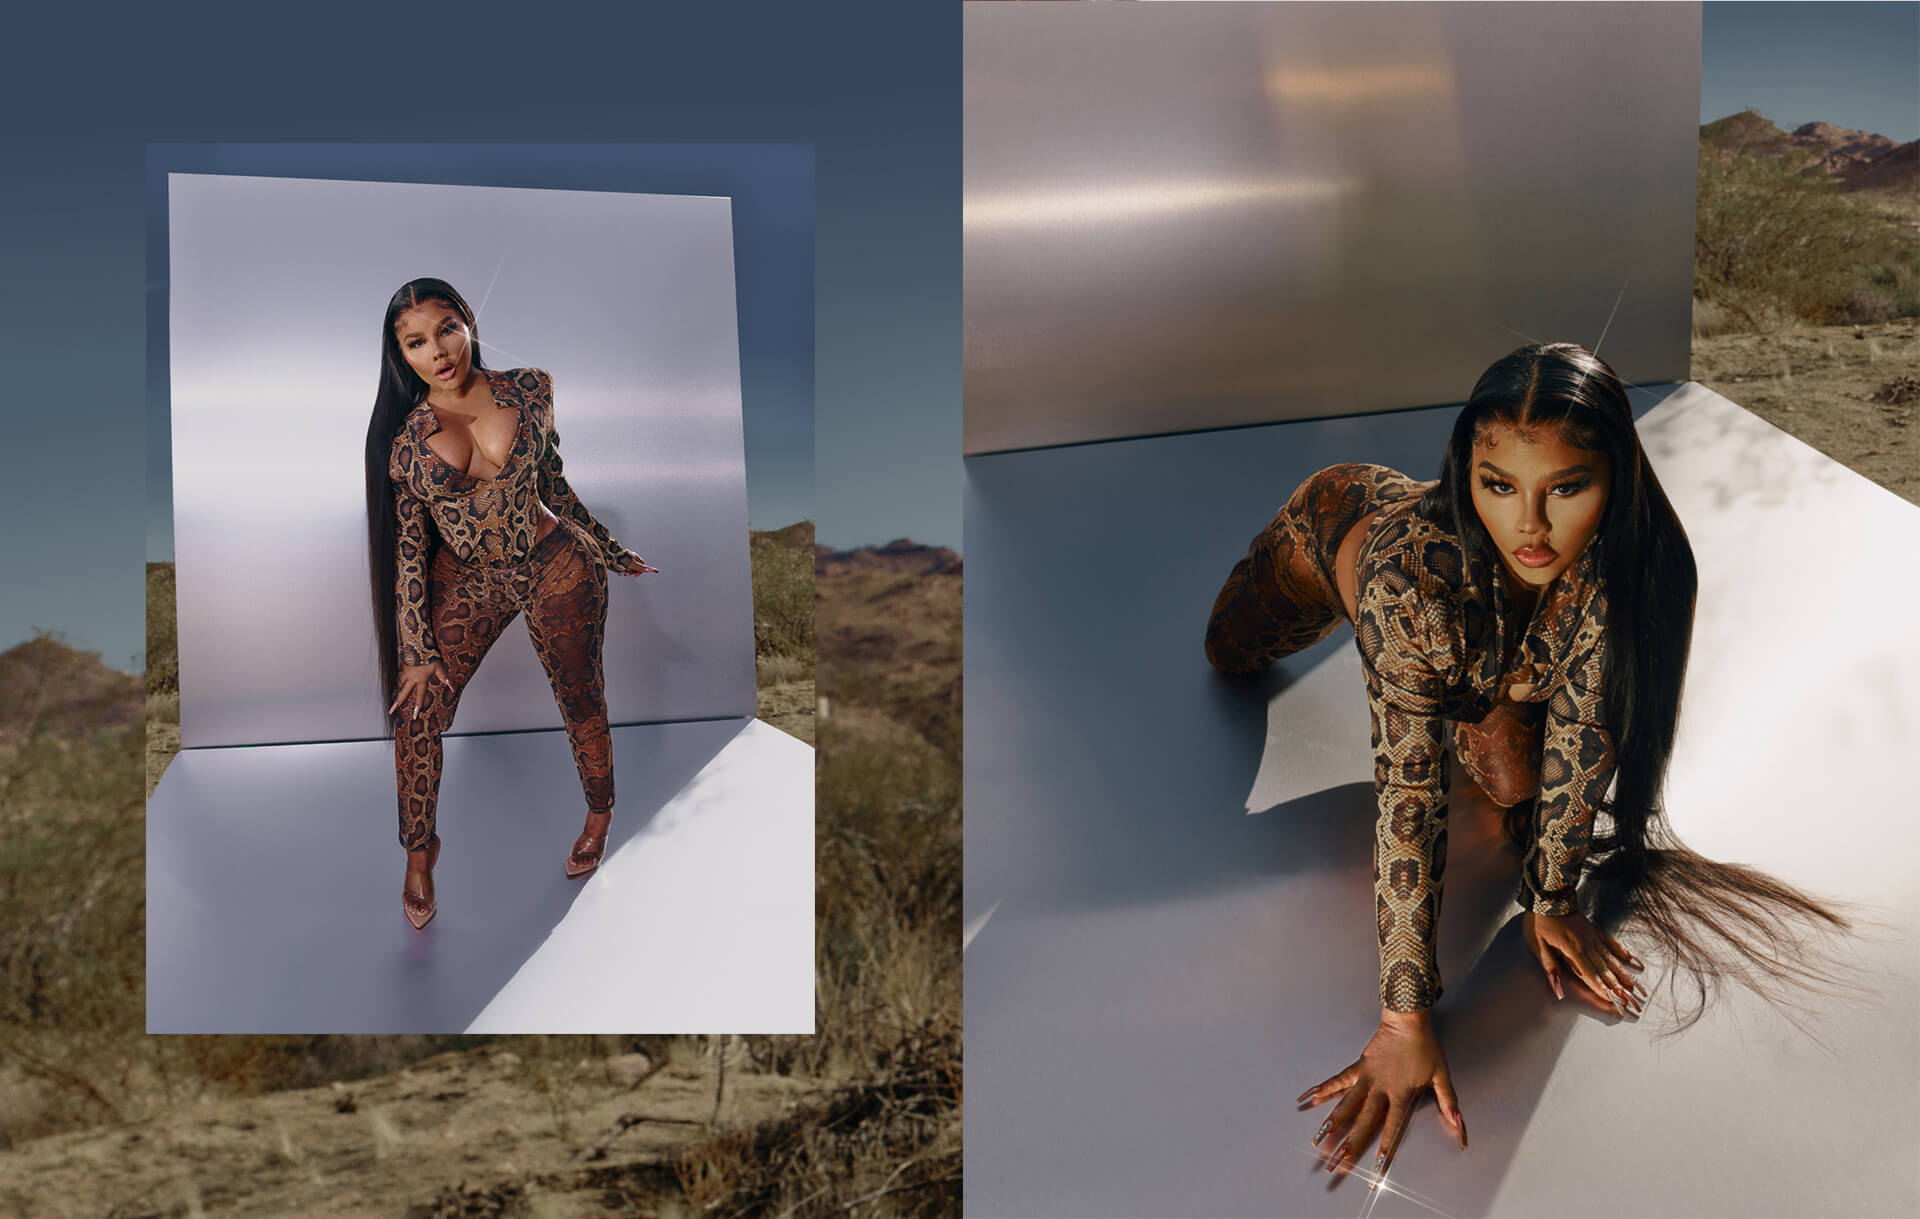 Lil Kim Lookbook Image 2 Desktop